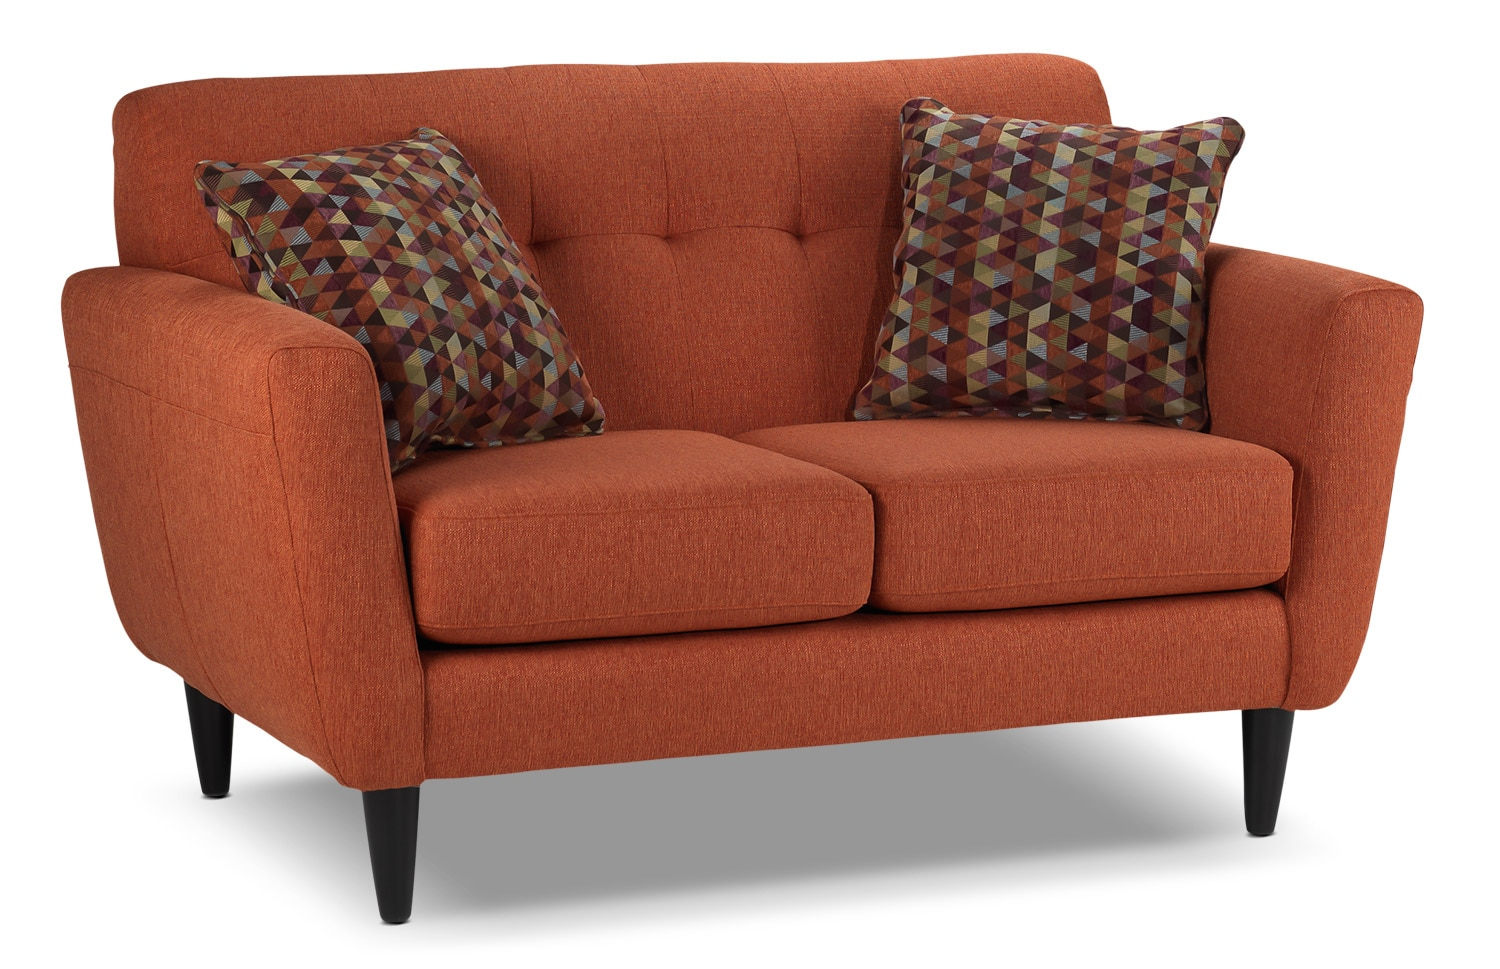 Living Room Furniture - Cobra Loveseat